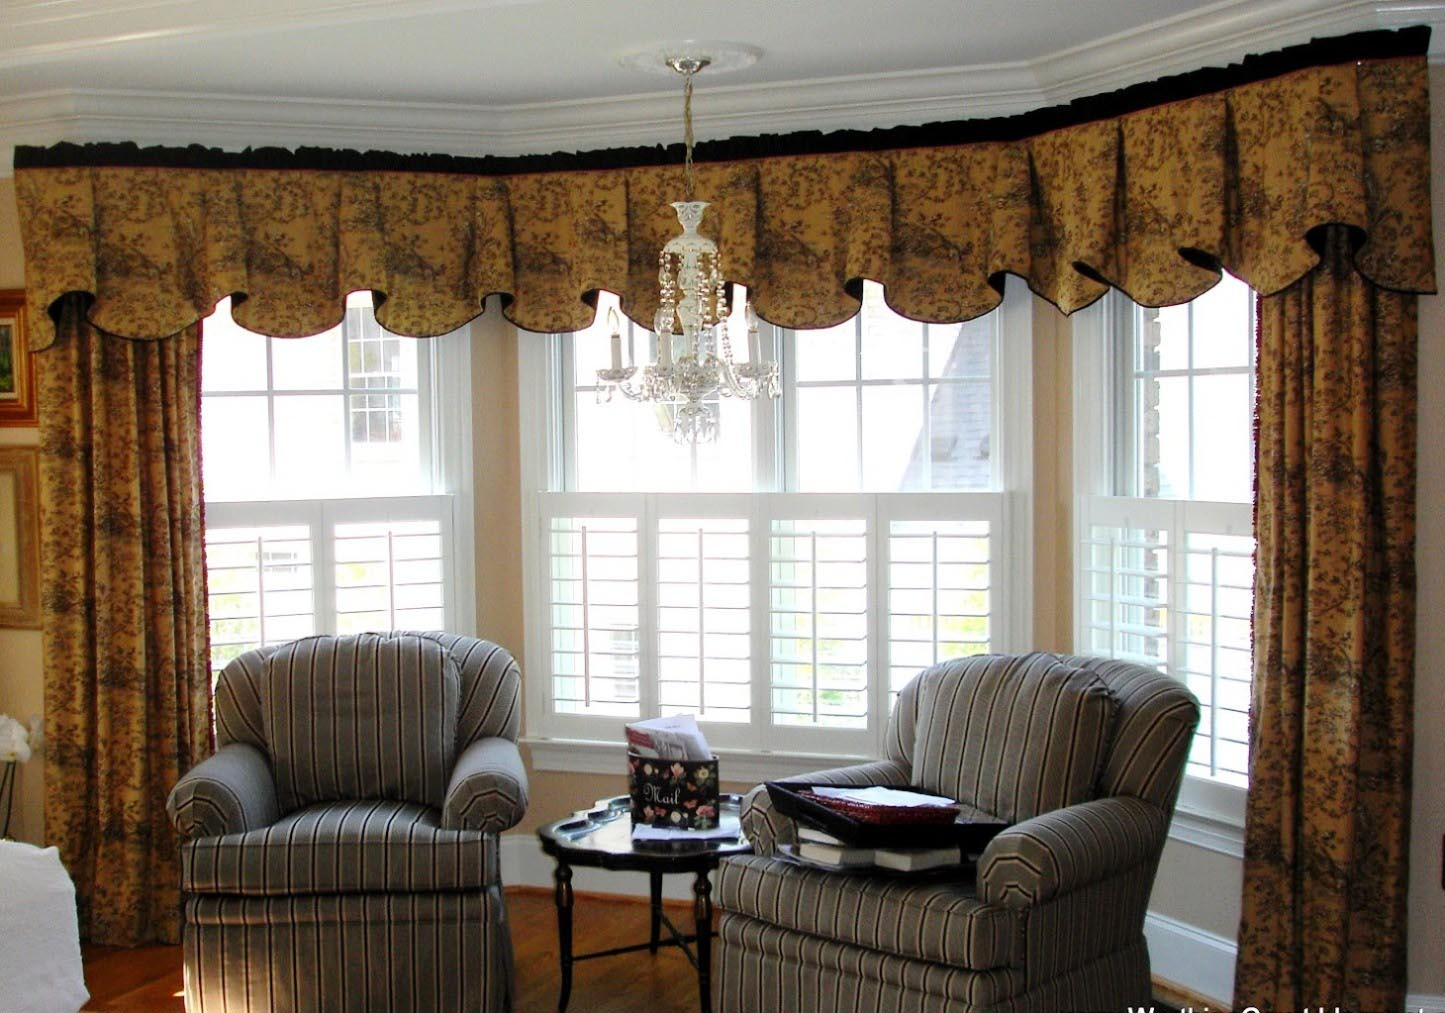 valance curtains for living room window treatments design ideas. Black Bedroom Furniture Sets. Home Design Ideas